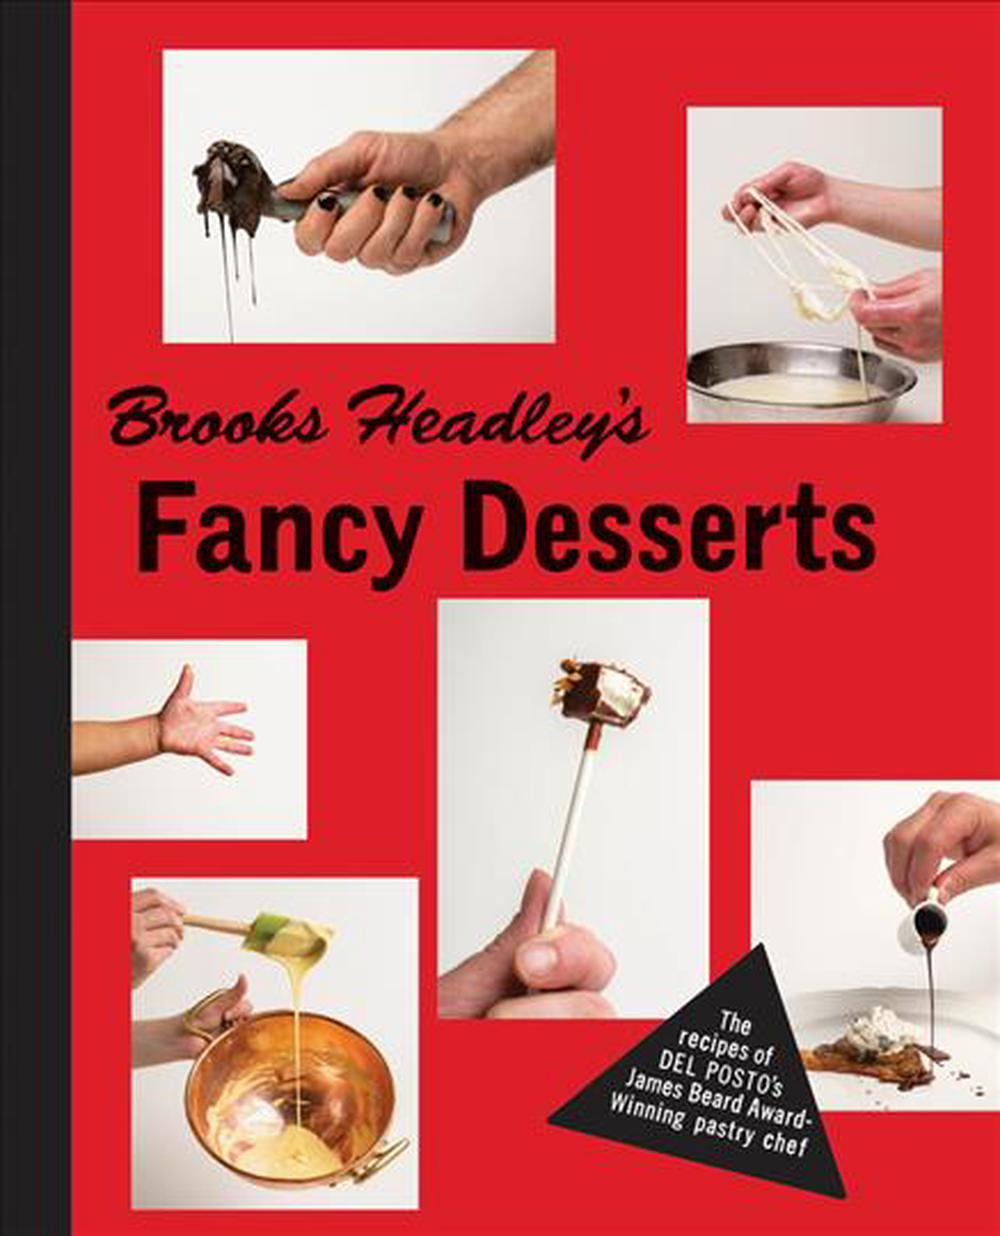 Brooks Headley's Fancy Desserts - The Recipes of Del Postos James Beard Award-Winning Pastry Chef by Brooks Headley, ISBN: 9780393241075